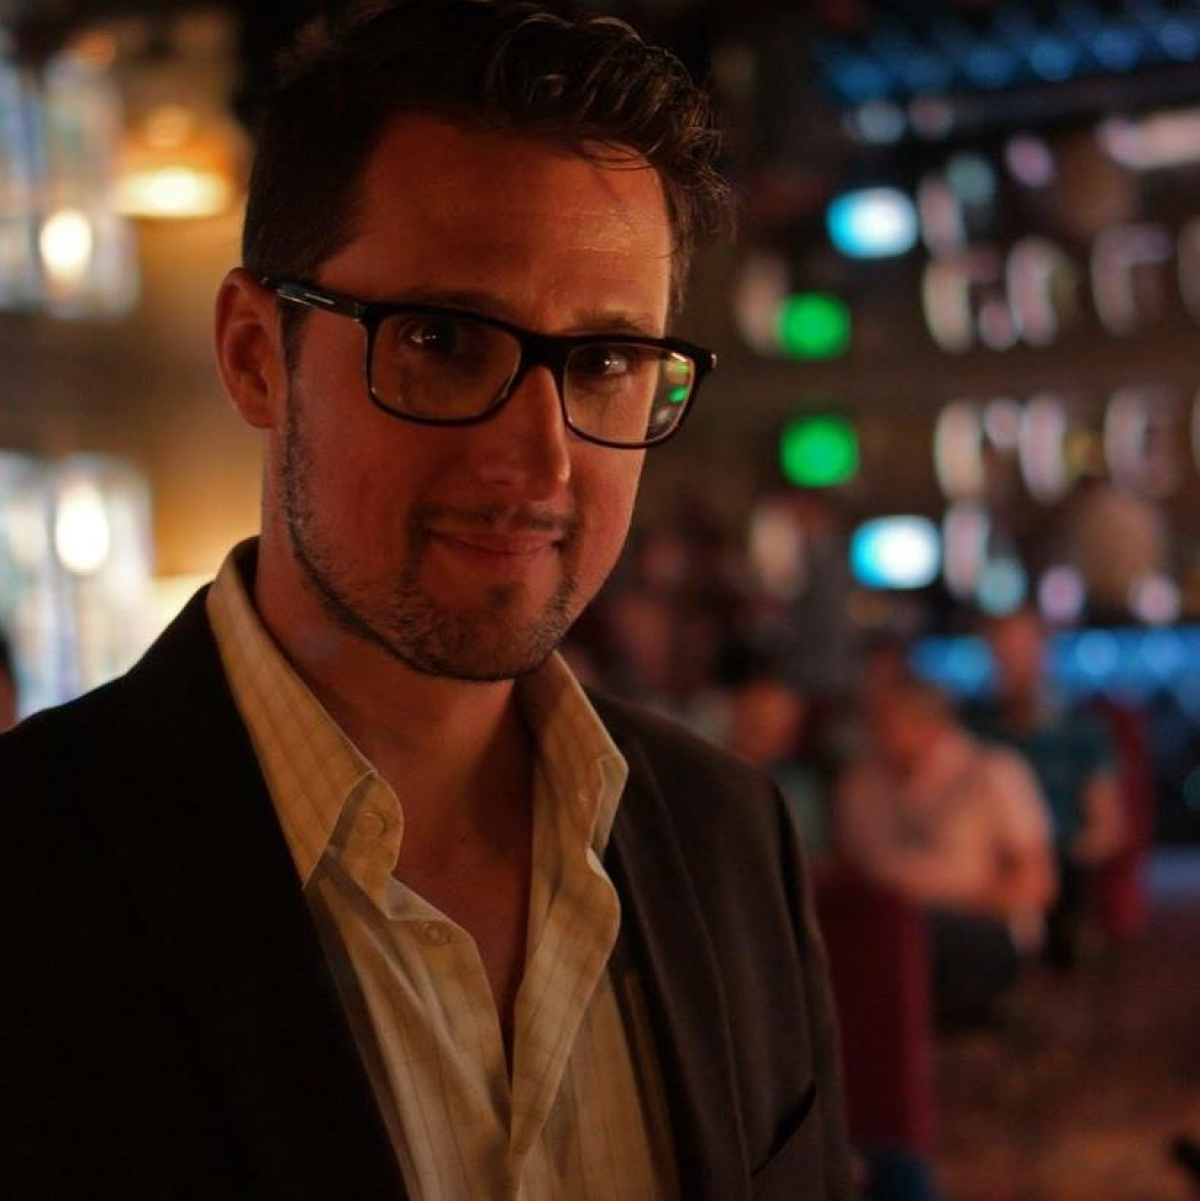 A photo of the author, Pablo Cartaya.